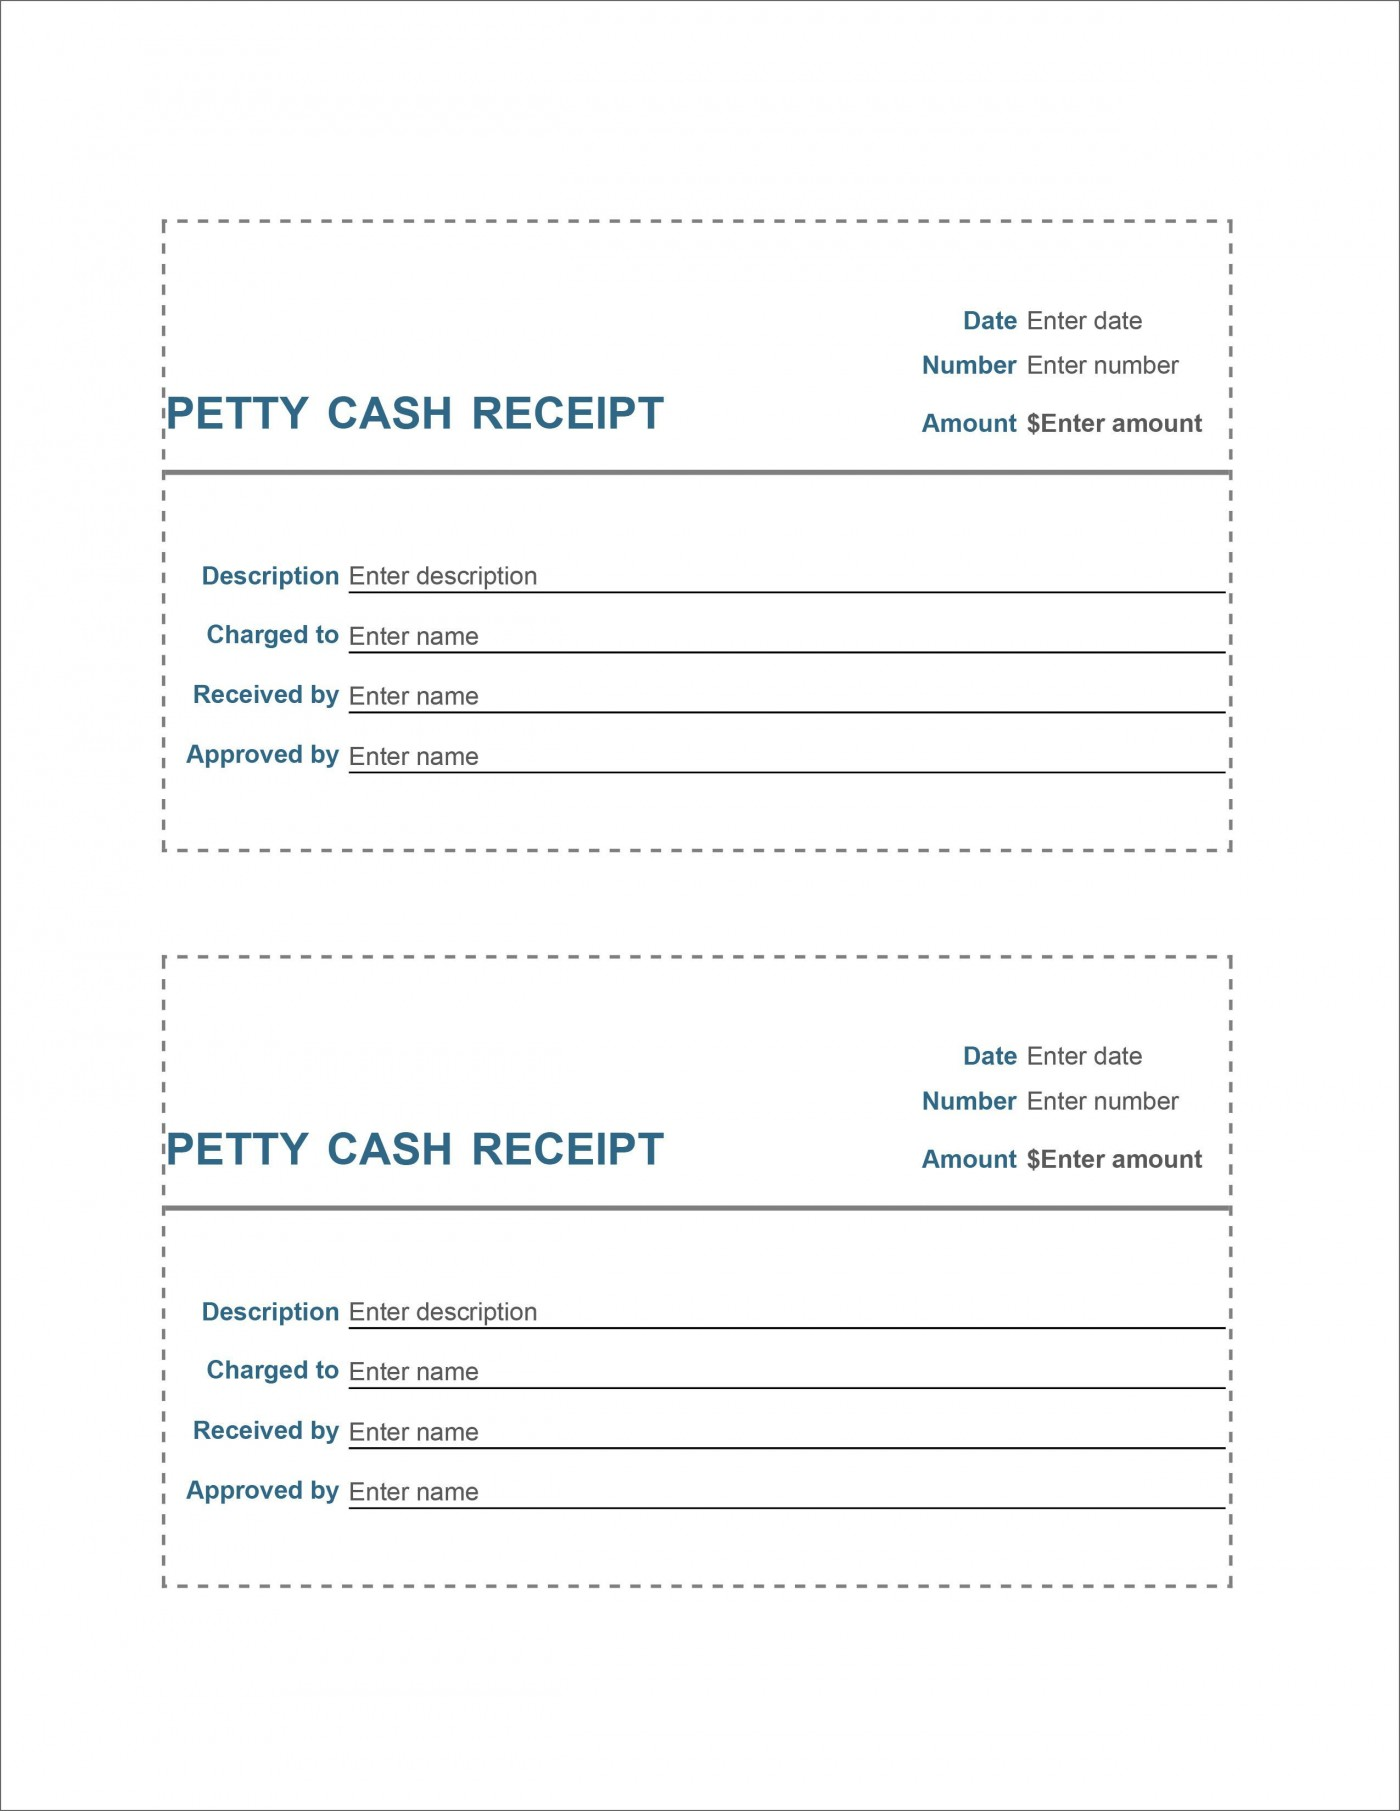 004 Surprising Receipt Template Microsoft Word Photo  Payment Sample Invoice1400